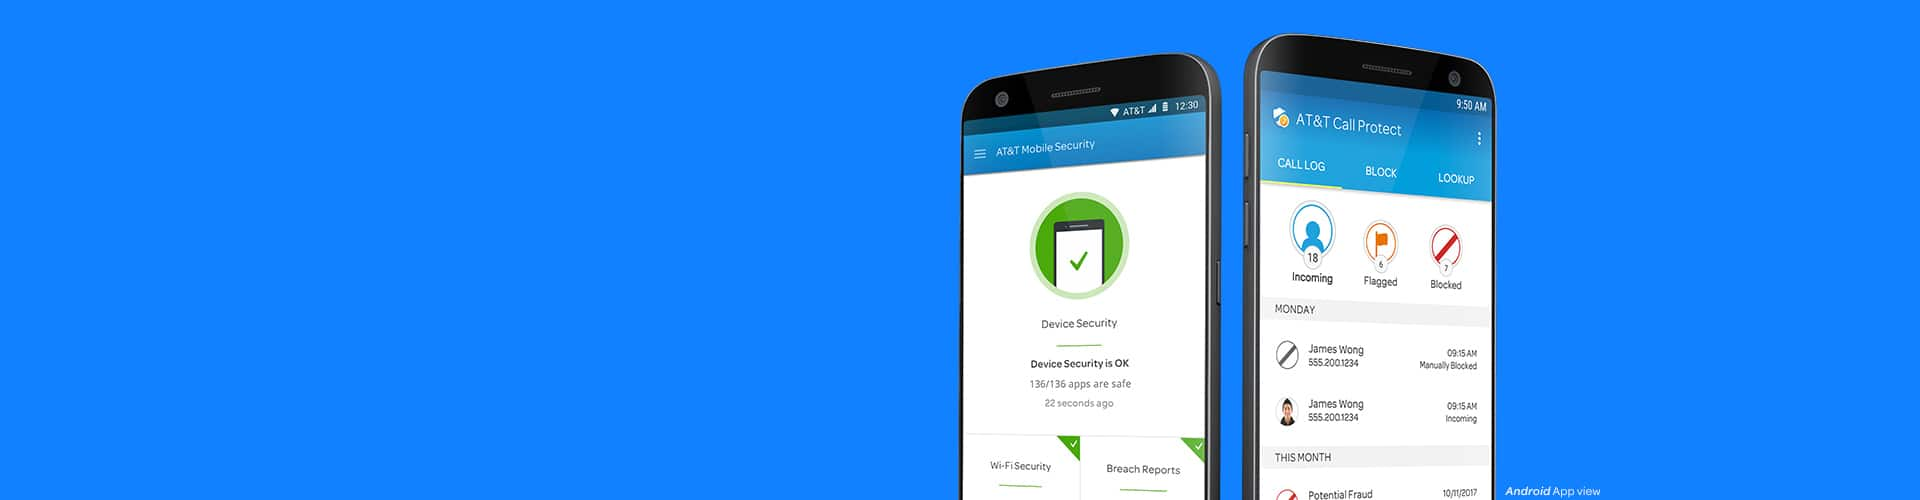 Security Apps to Protect You & Your Phone - AT&T